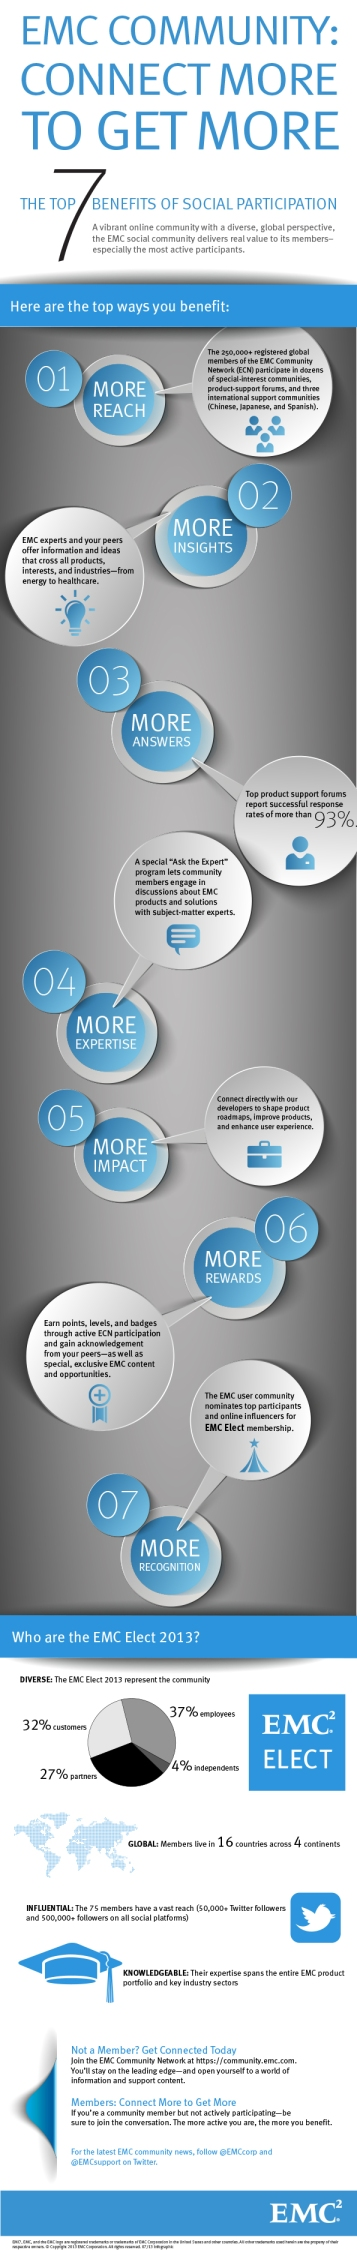 7 Reasons to Join the EMC Community Network – Infographic